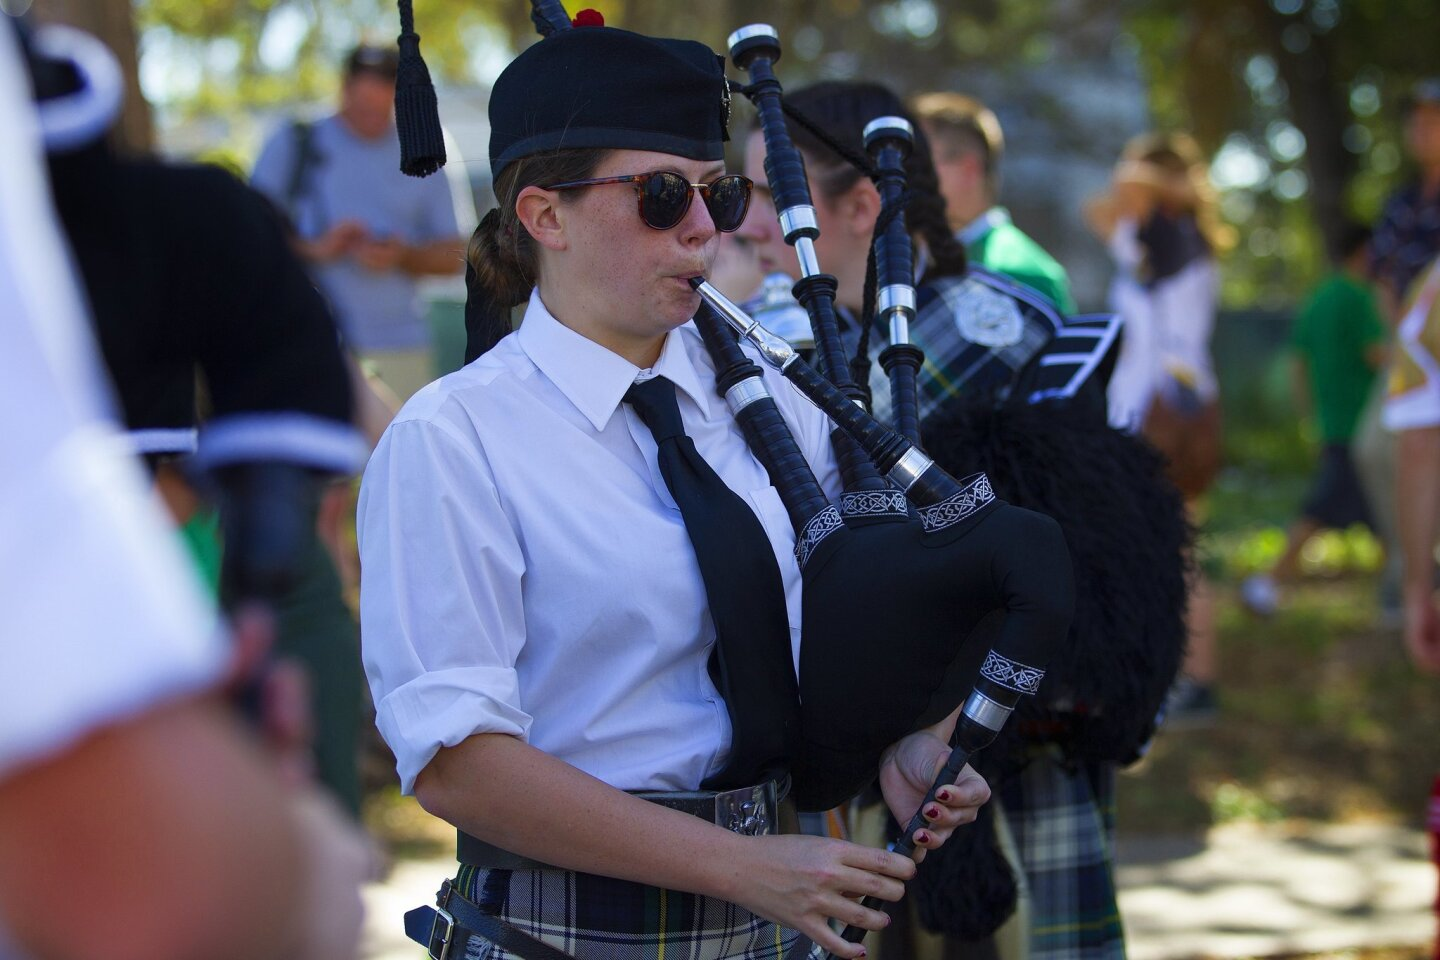 Elizabeth Kelley from Mt. Helix Charter High School's Highlander Pipe Band warms up before the start of the 2015 St. Patrick's Day parade in San Diego.